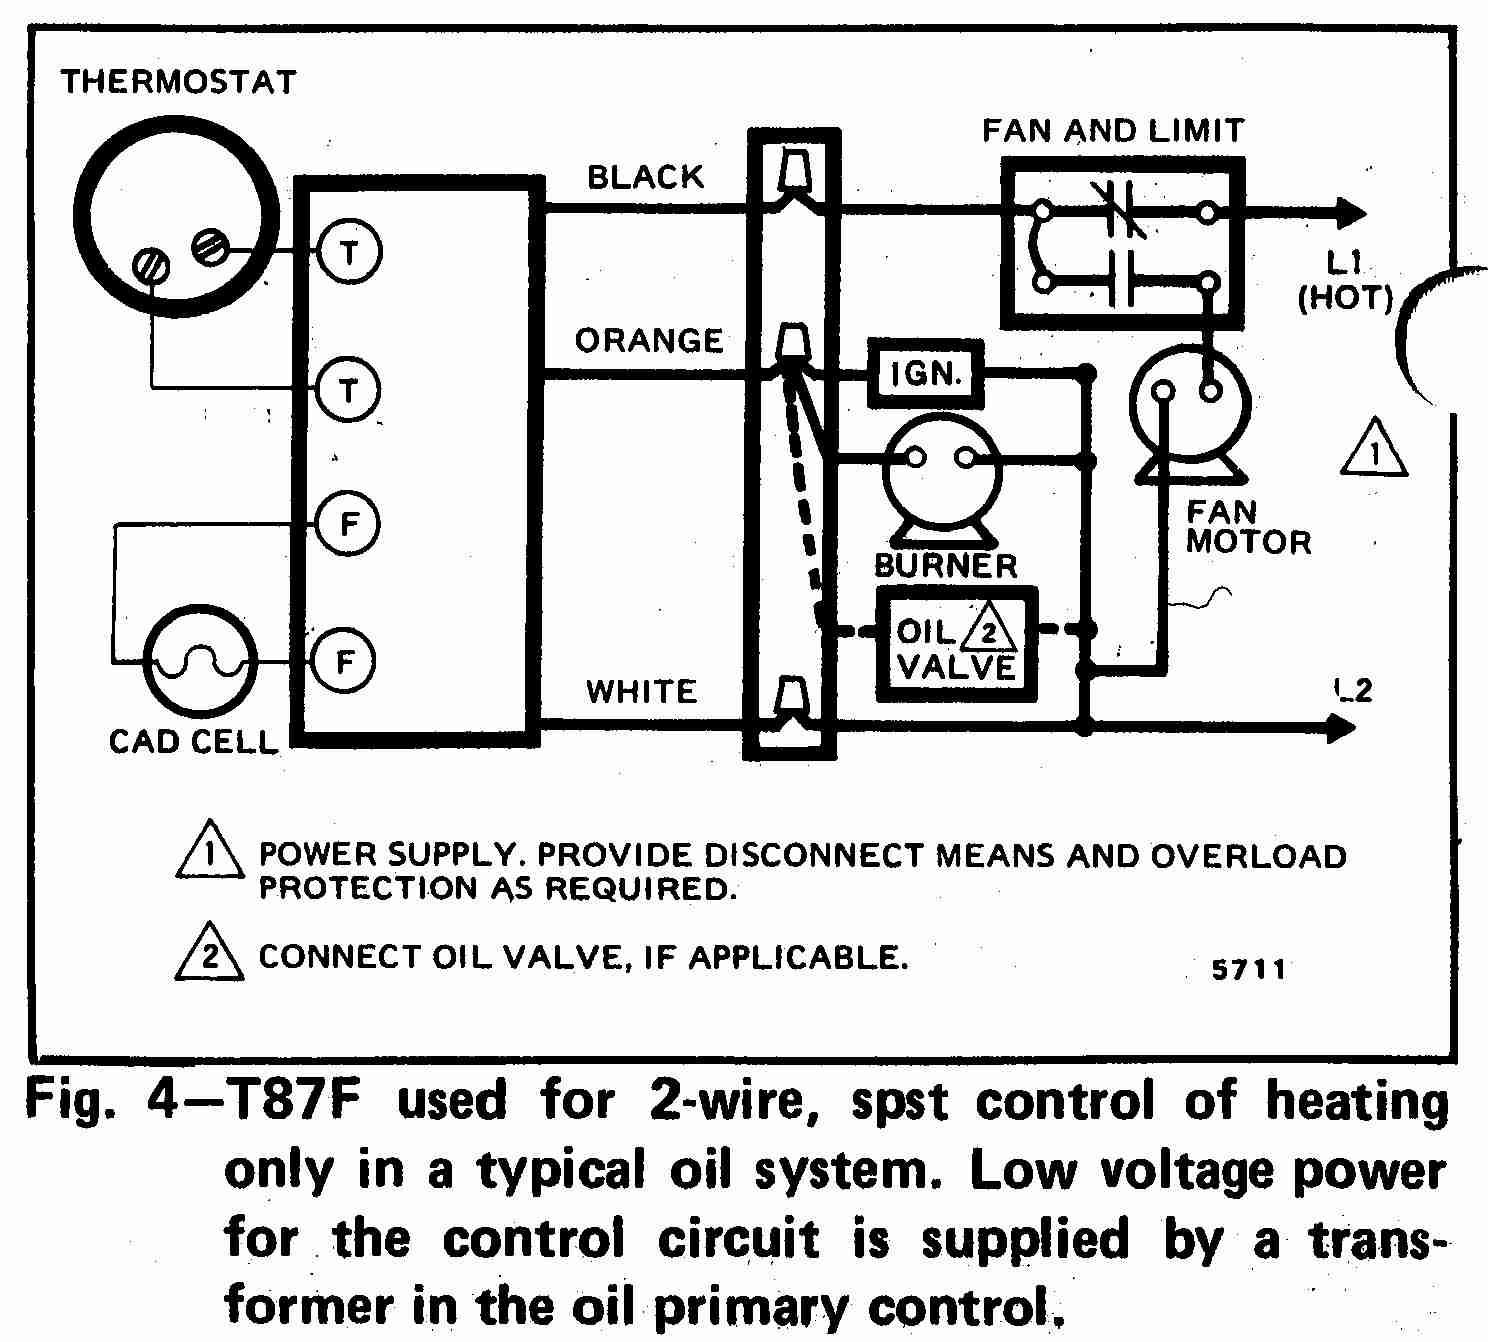 hight resolution of room thermostat wiring diagrams for hvac systems gas thermostat wiring gas thermostat wiring